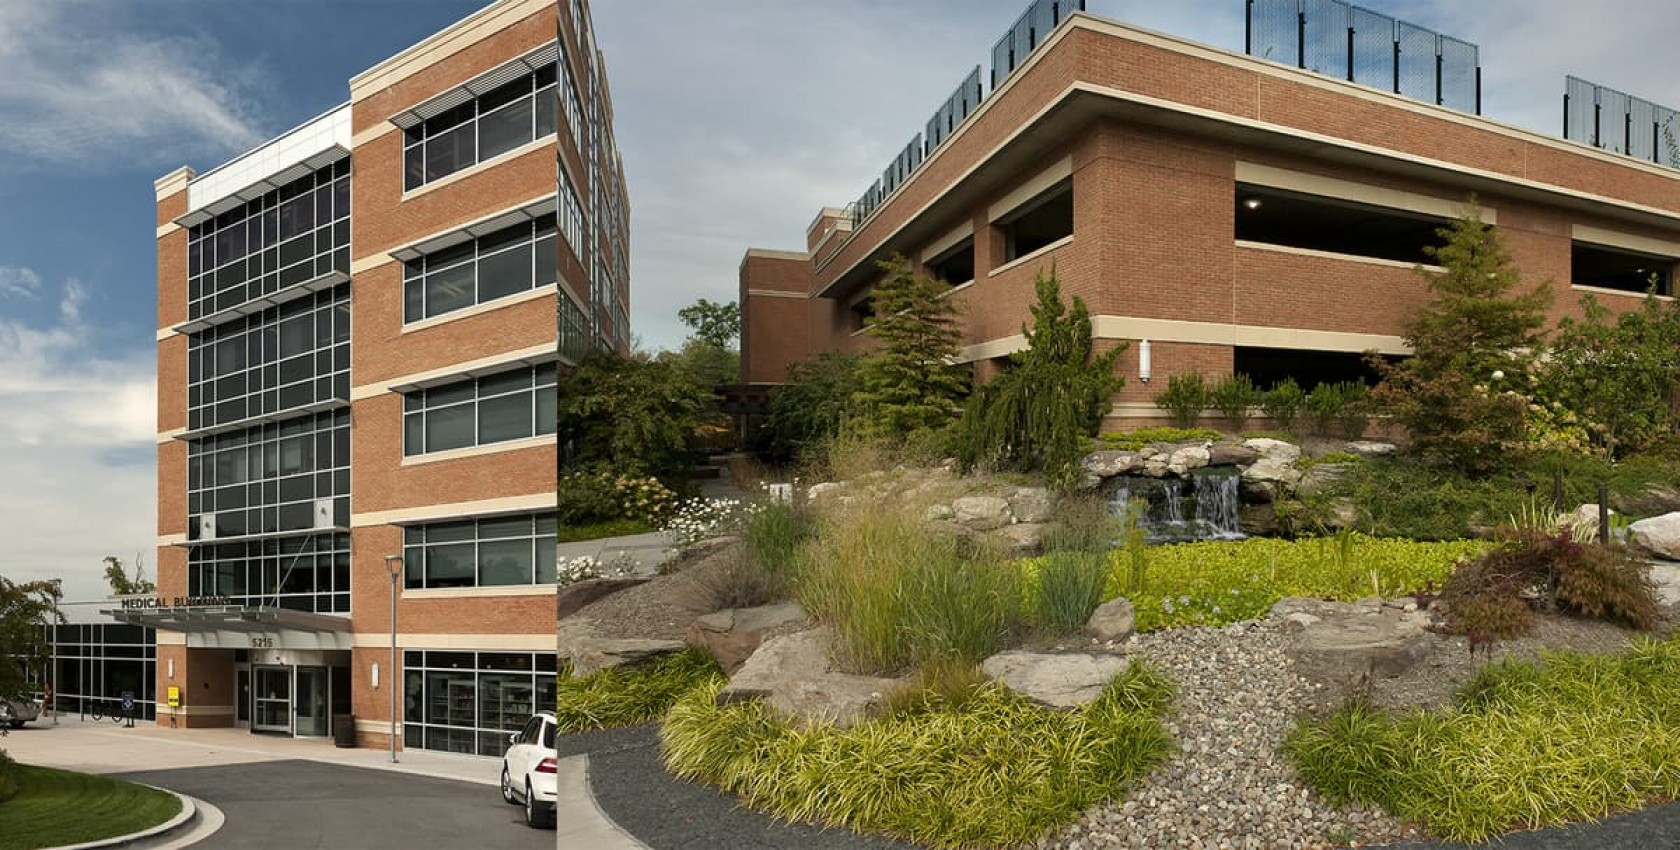 Sibley MOB, Garage, and Cancer Center, Healthcare